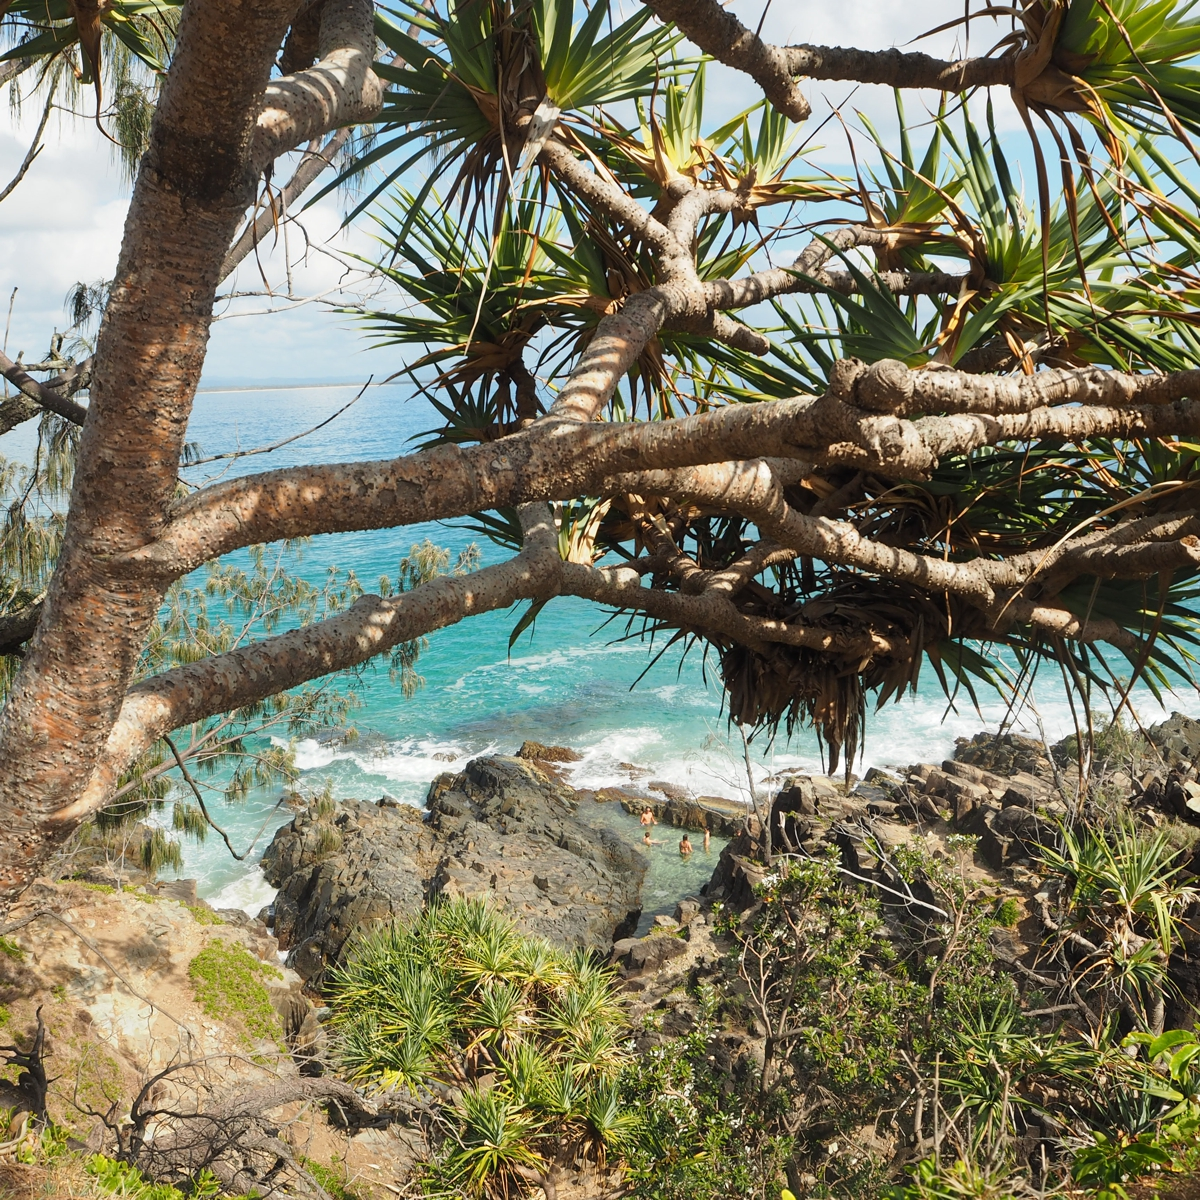 National Park | 7 things not to miss when visiting Noosa